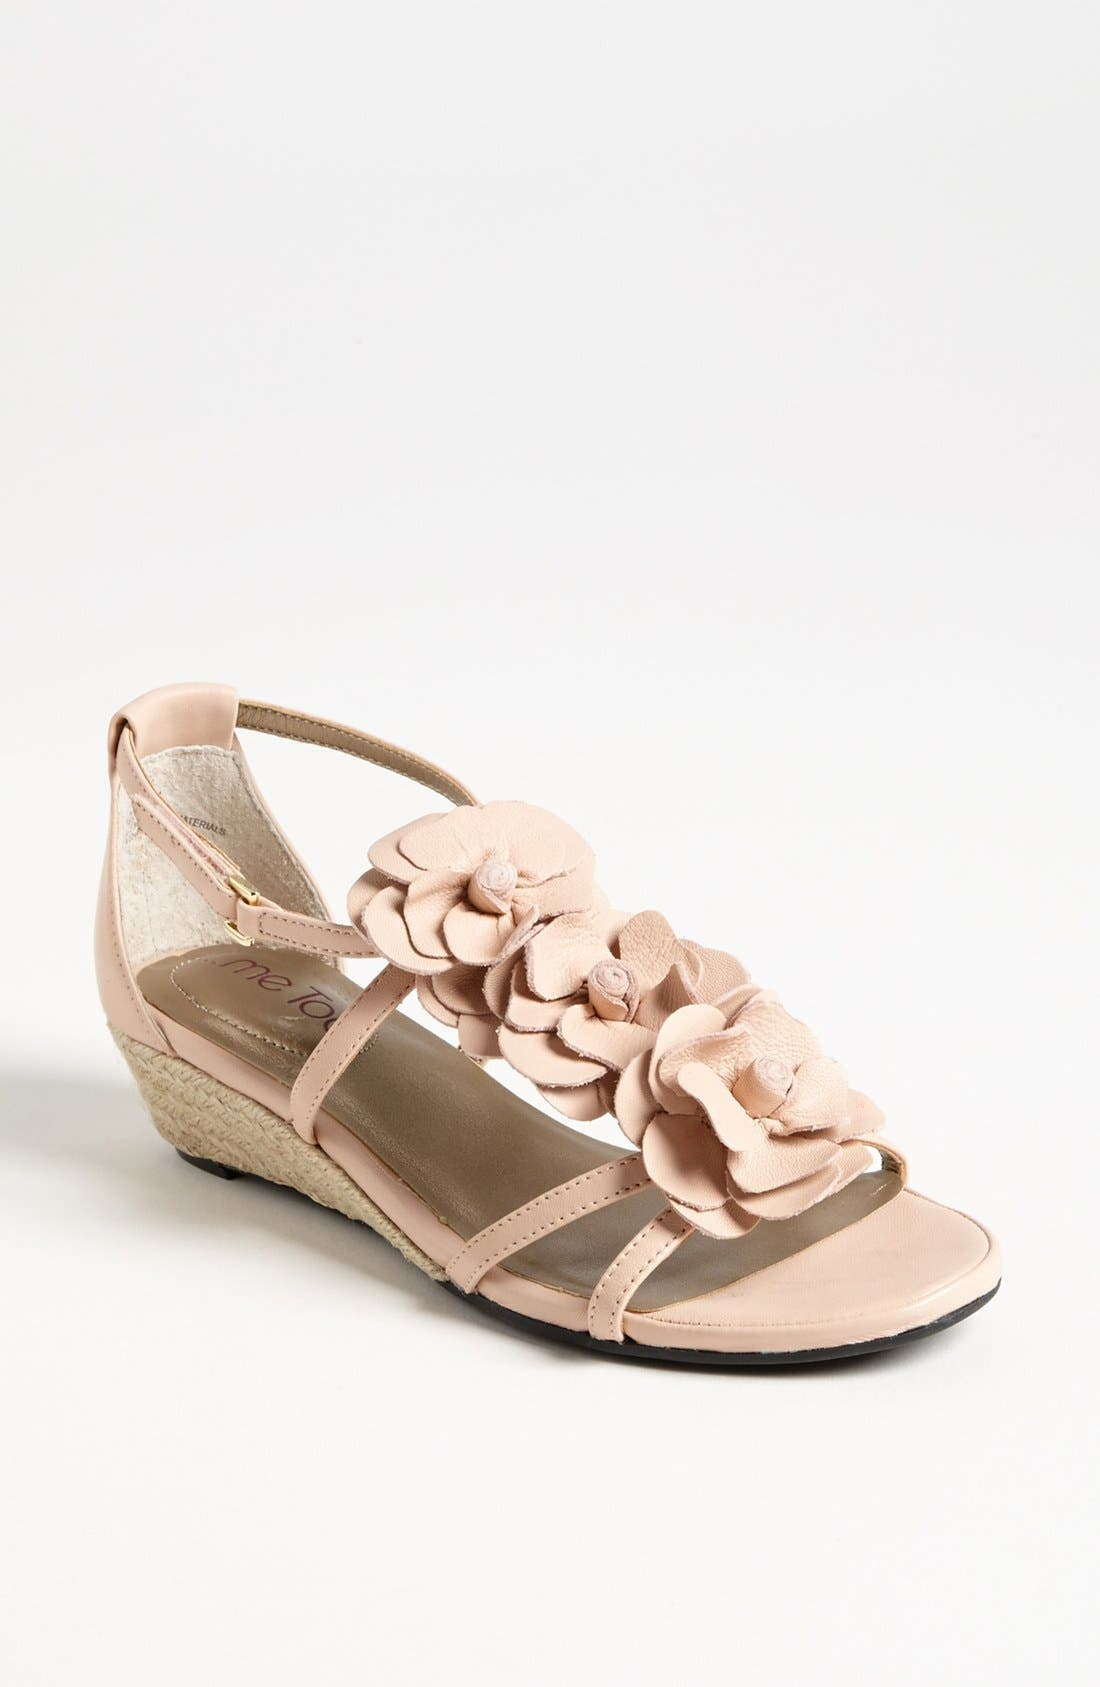 Main Image - Me Too 'Simona' Wedge Sandal